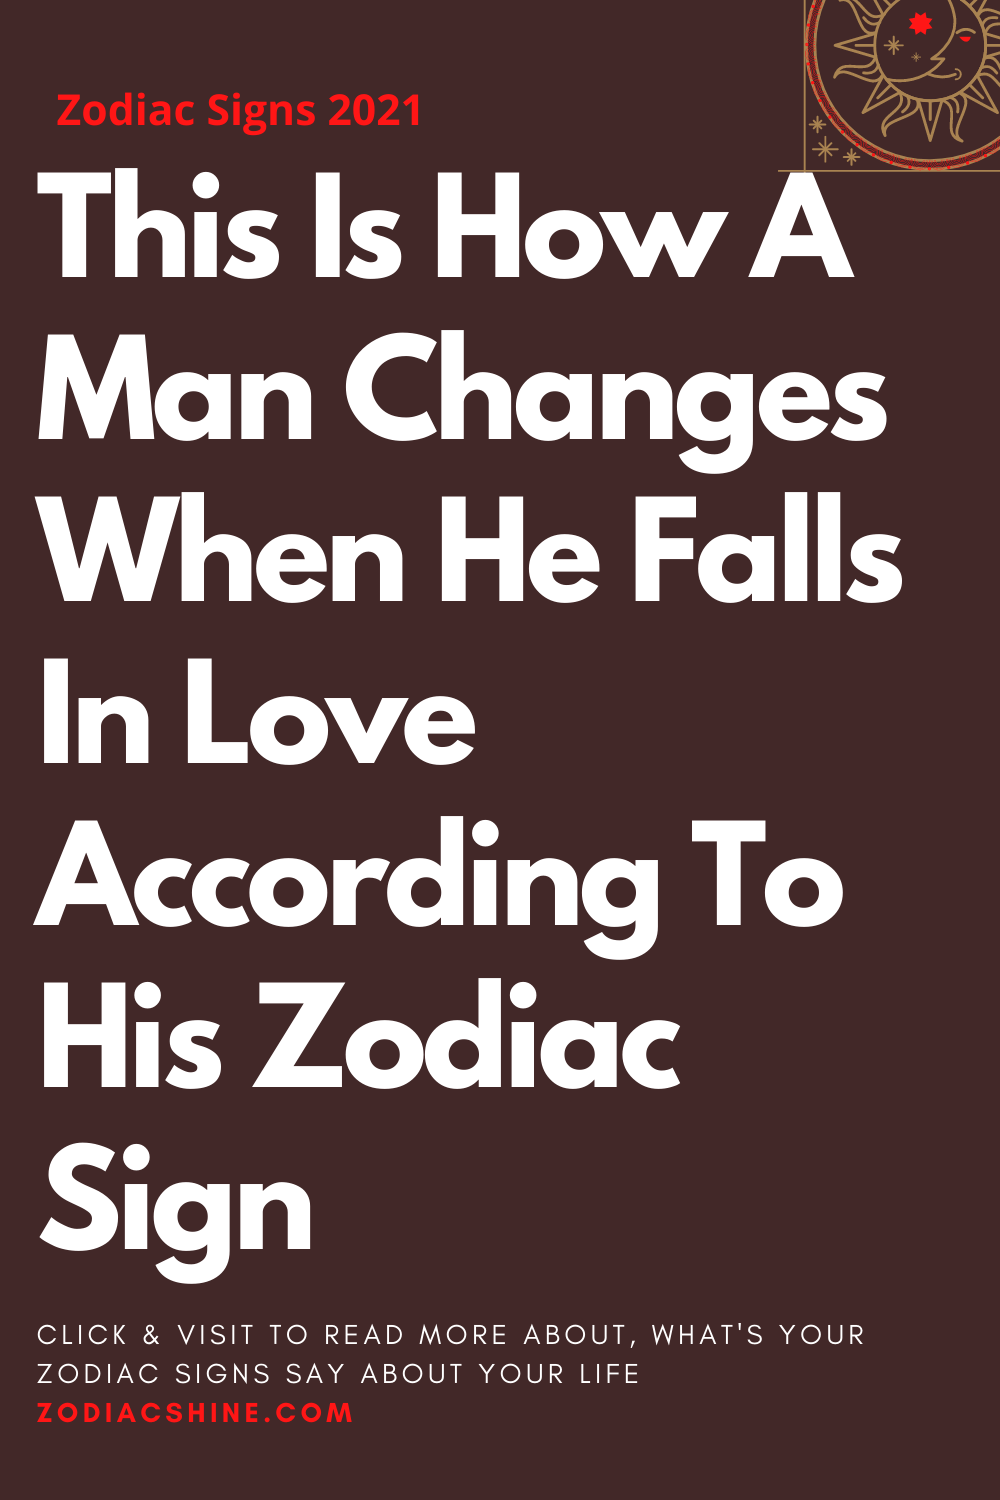 This Is How A Man Changes When He Falls In Love According To His Zodiac Sign